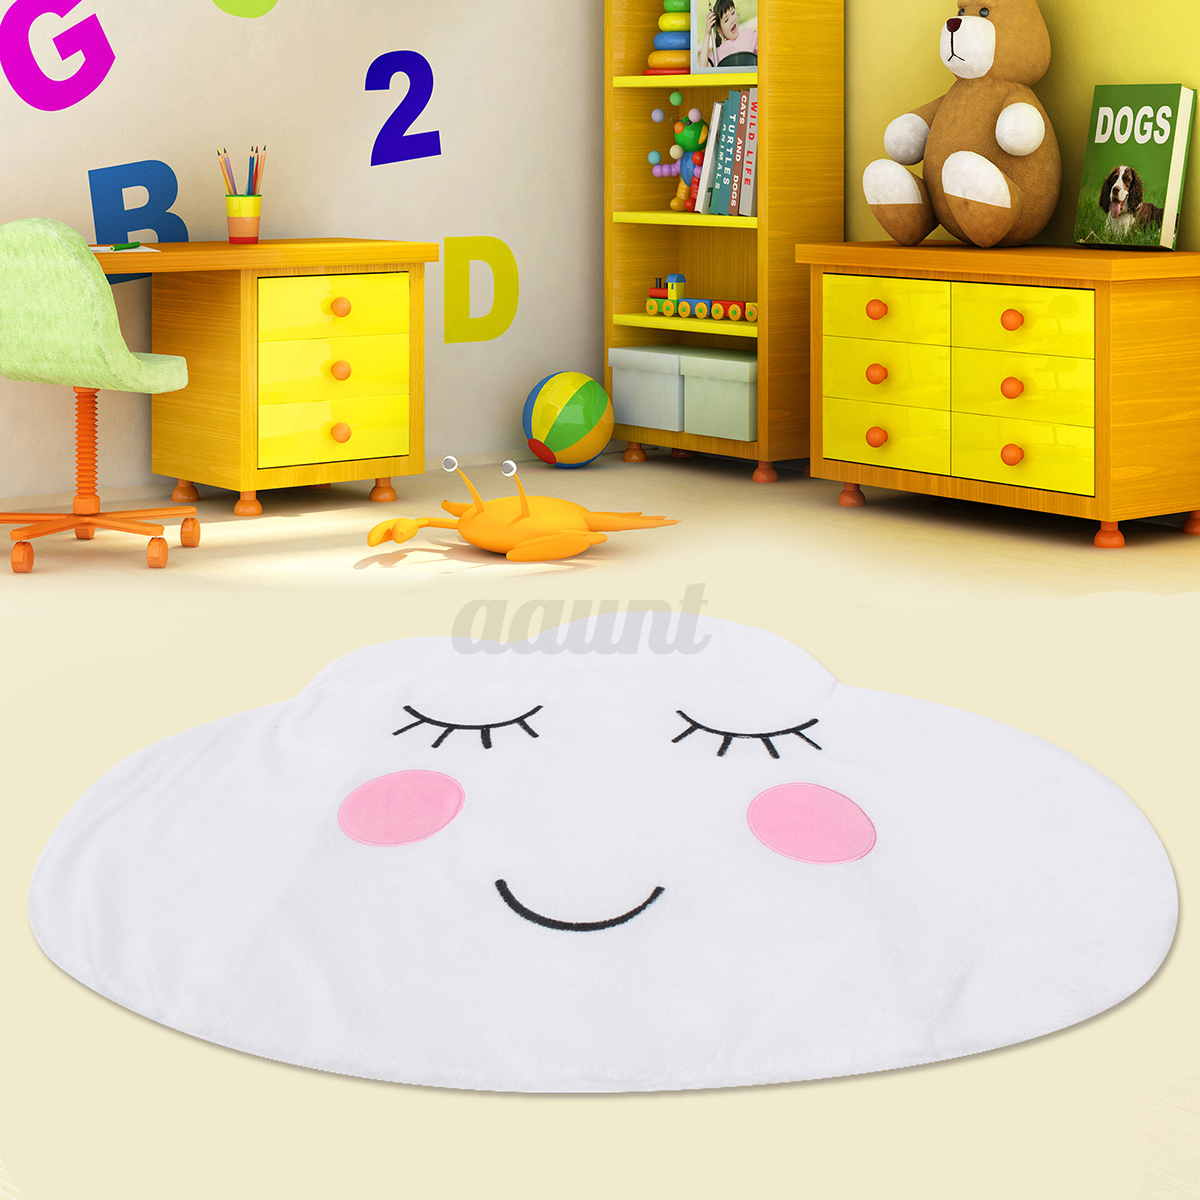 Rugs For Children's Rooms Cotton Kids Bedroom Carpets Nursery Play Mats Childrens